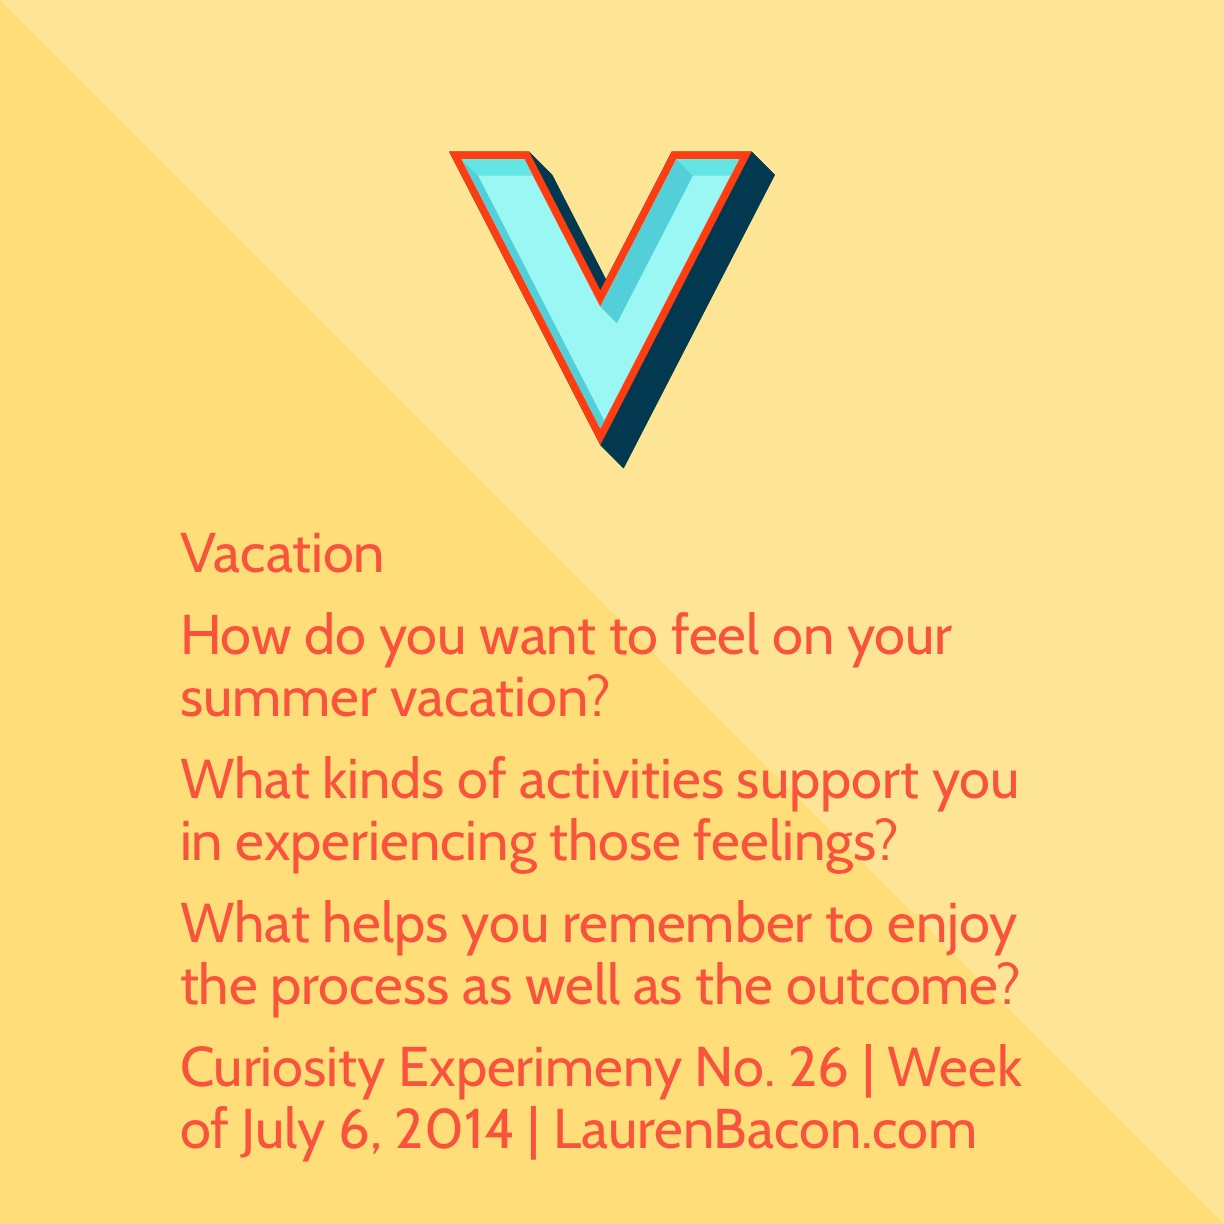 How Do You Want Your Summer Vacation to Feel?